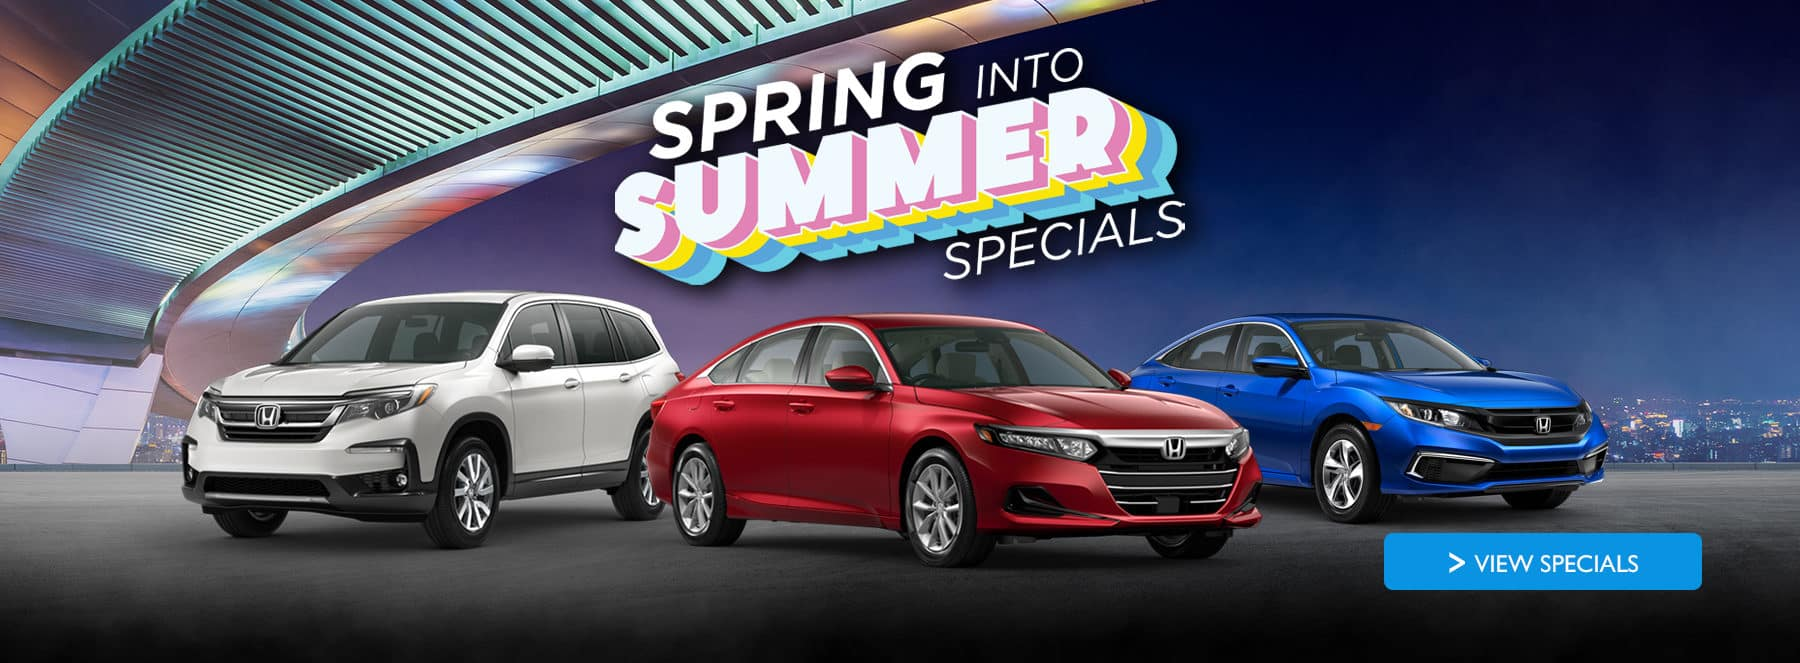 Spring into summer specials with a CR-V, Accord, and Civic shown